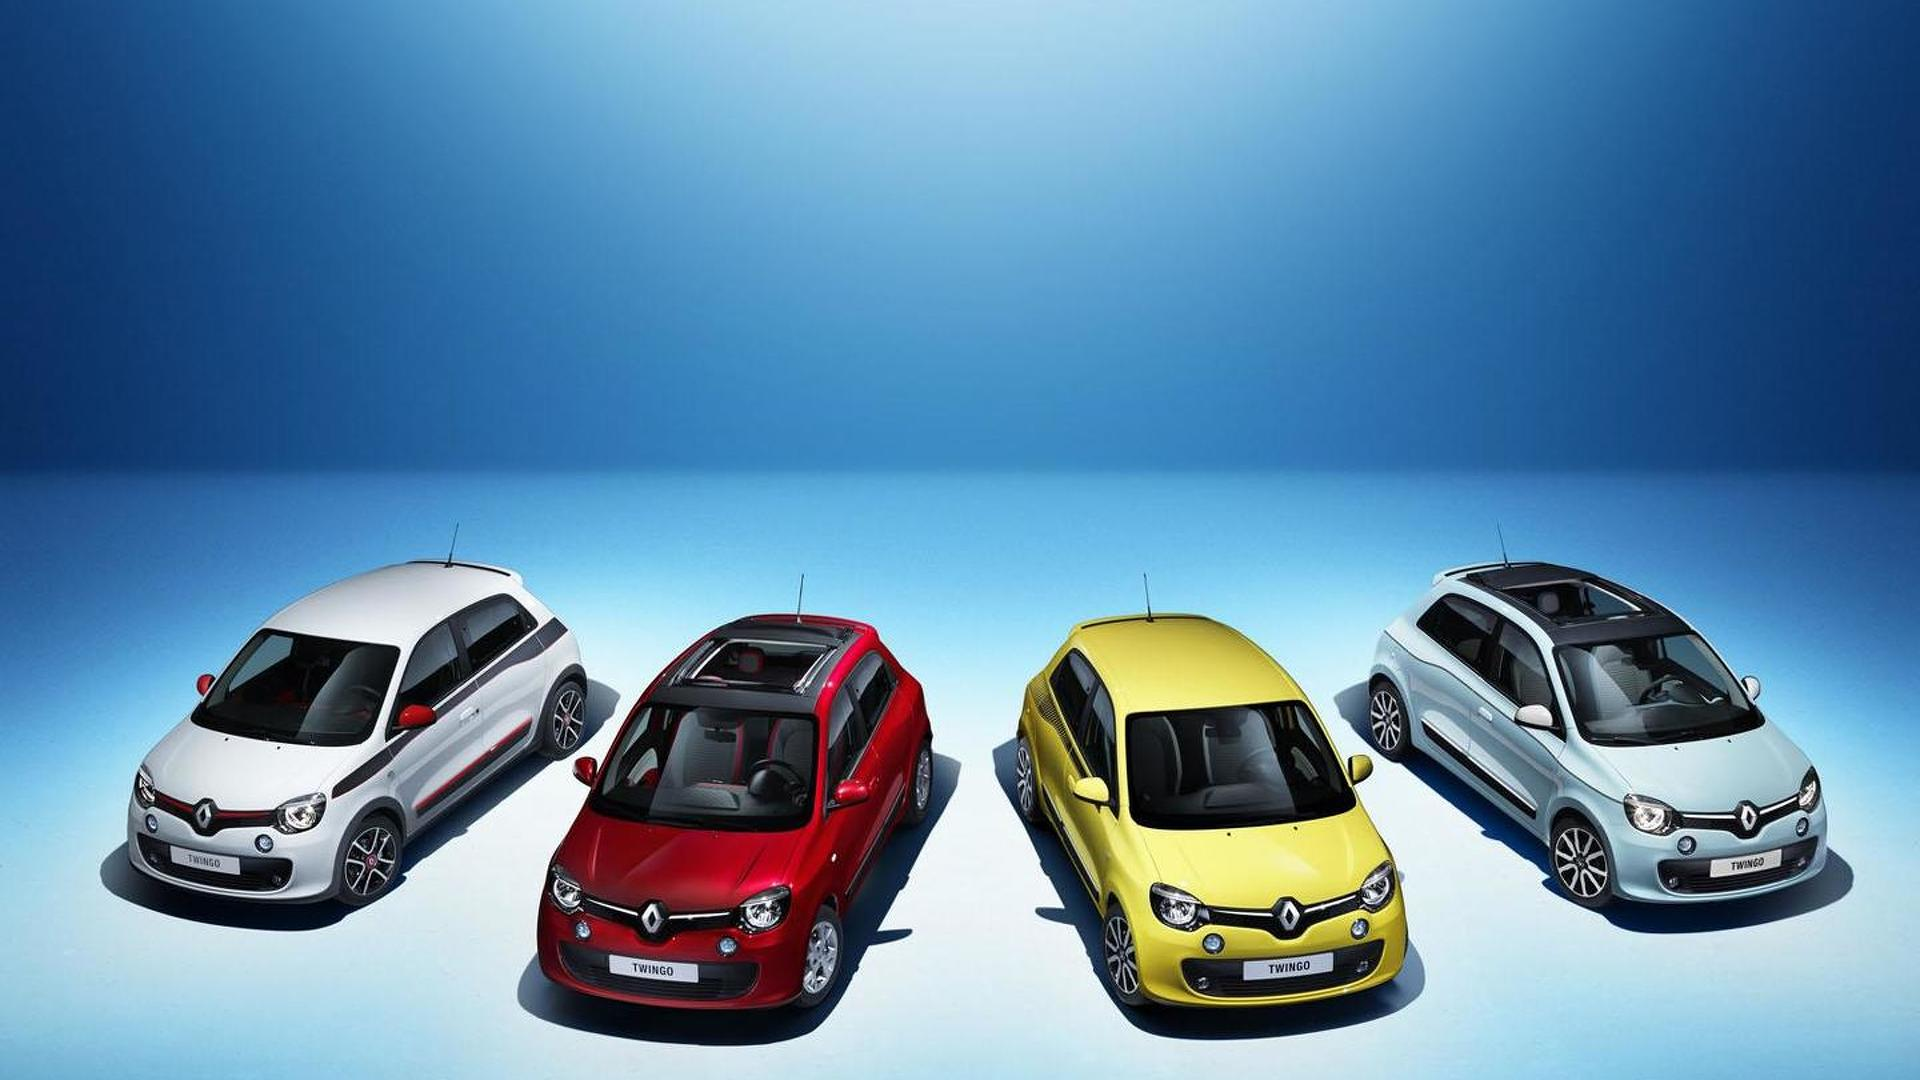 Renault Twingo hatchback and convertible revealed